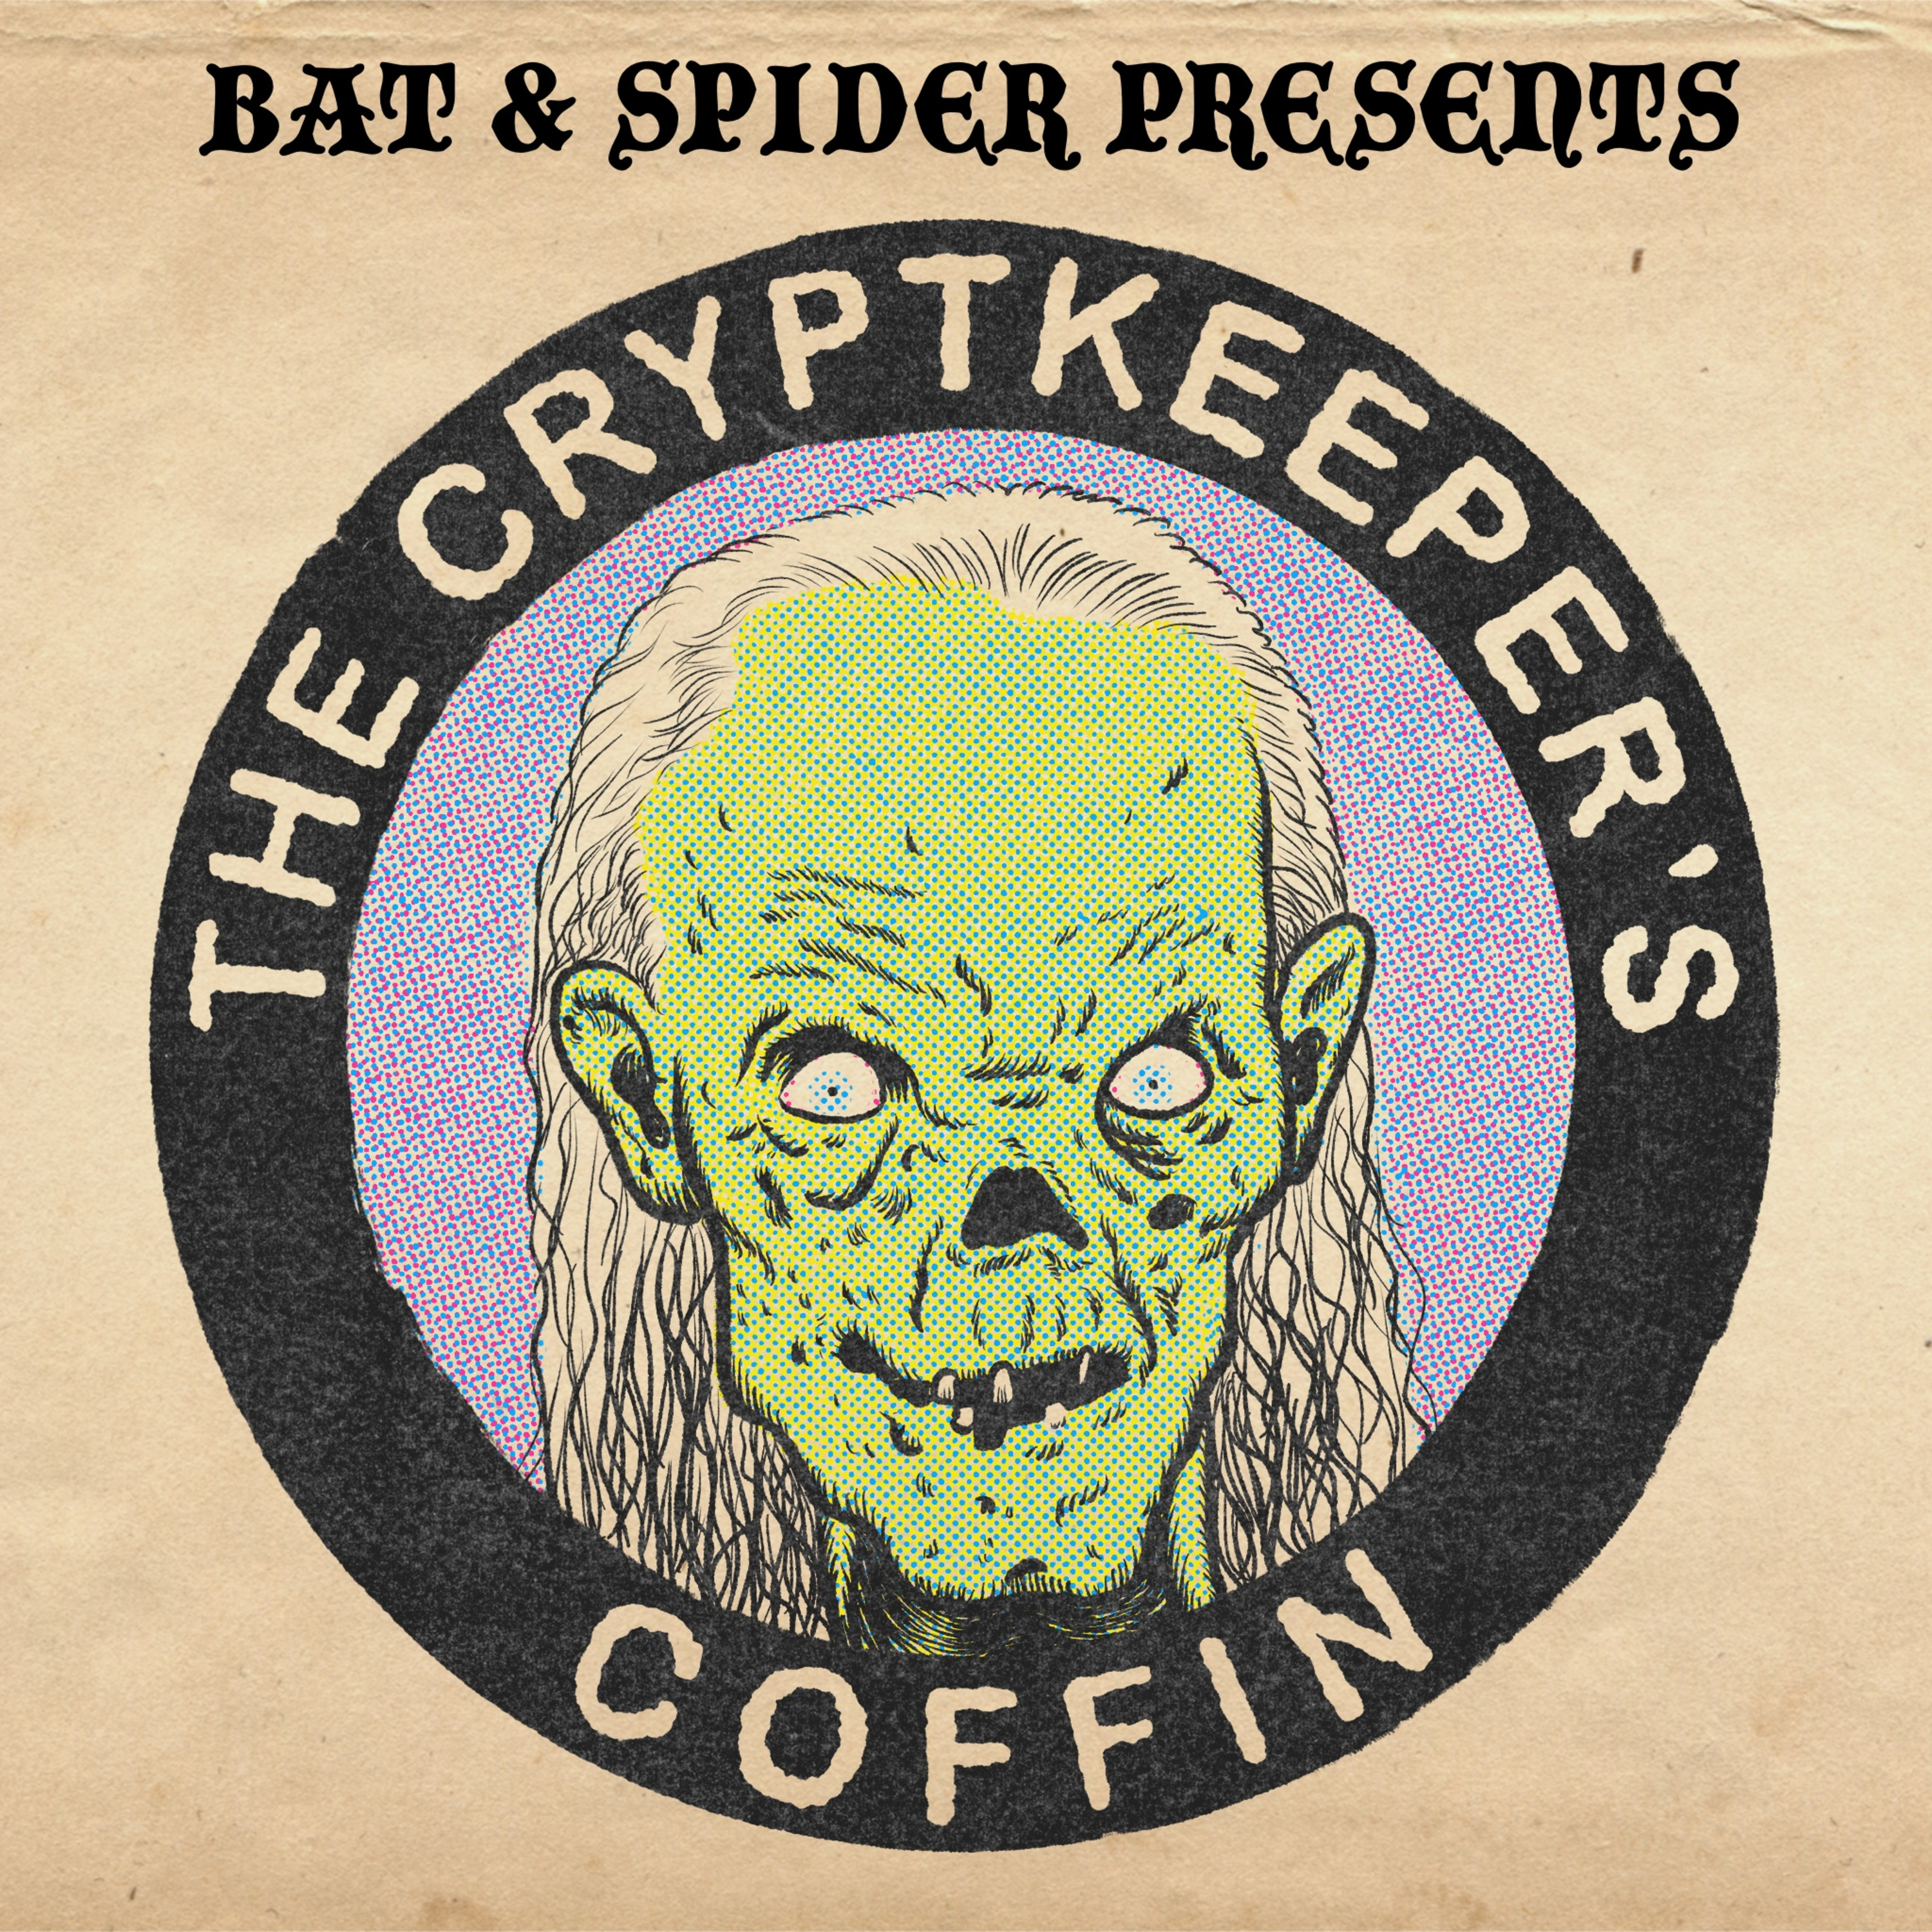 The Crypt Keeper's Coffin 003 - Dig That Cat, Man...He's Real Gone